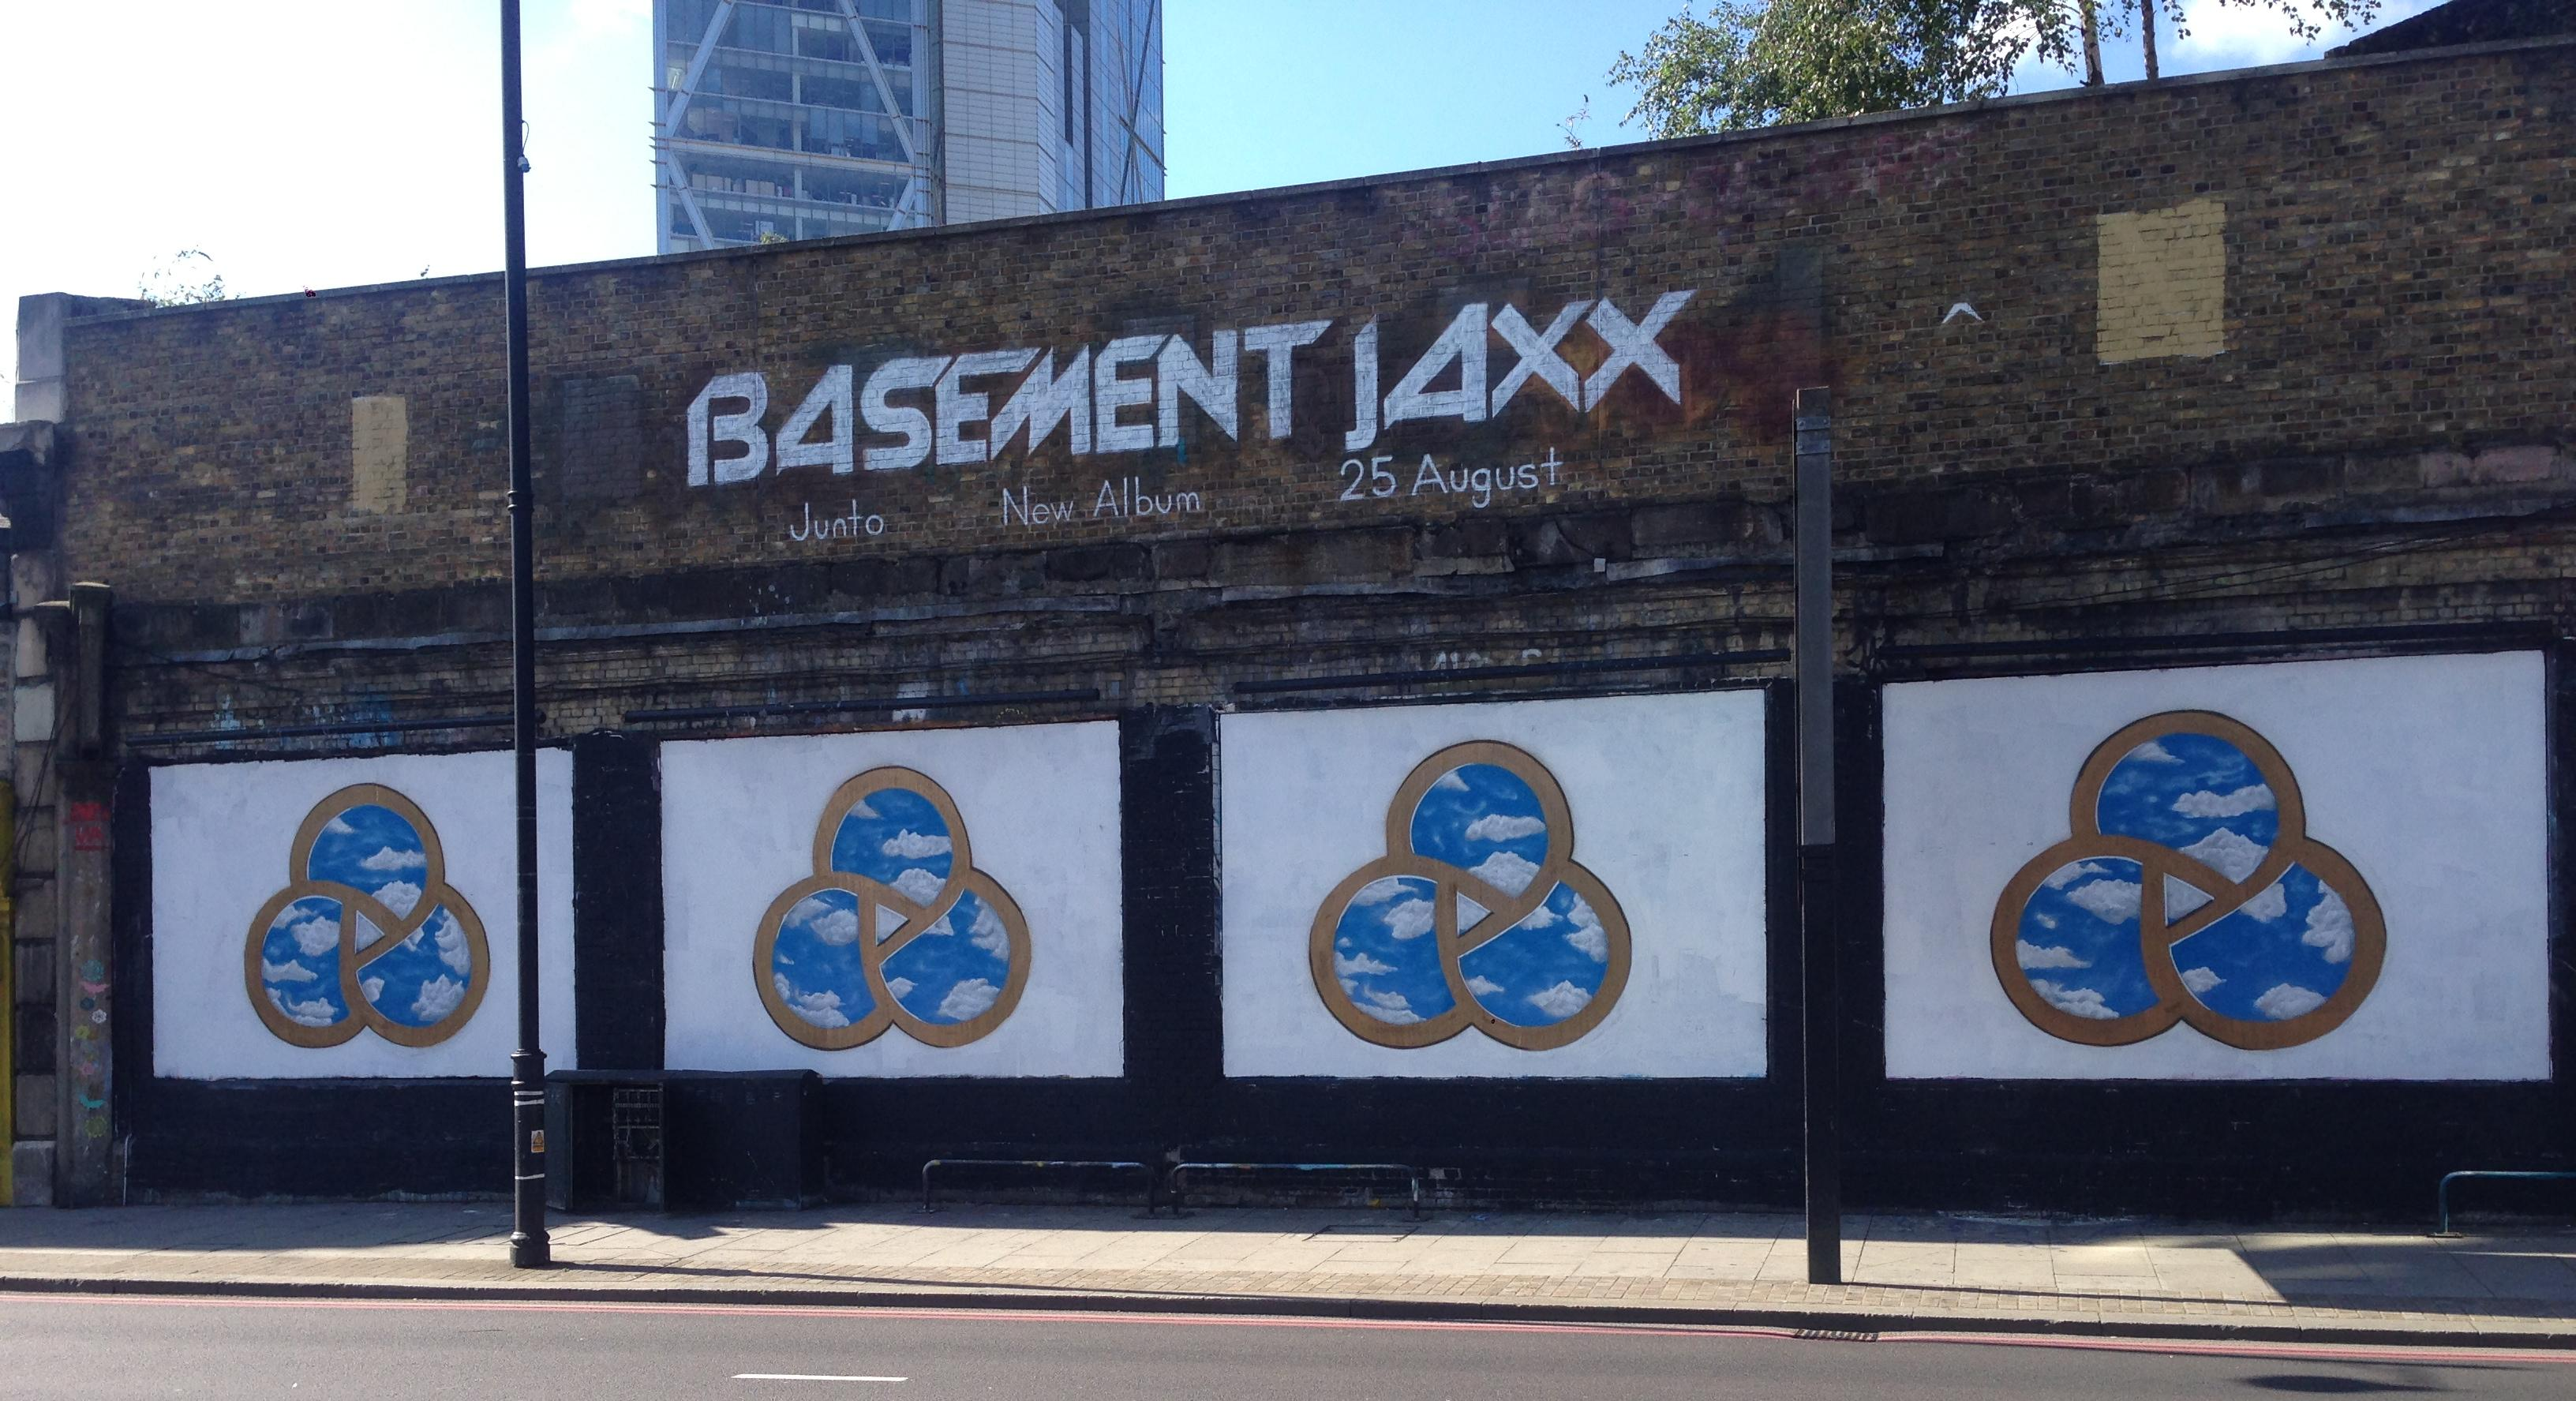 Basement JAXX on the Shoreditch Art Wall